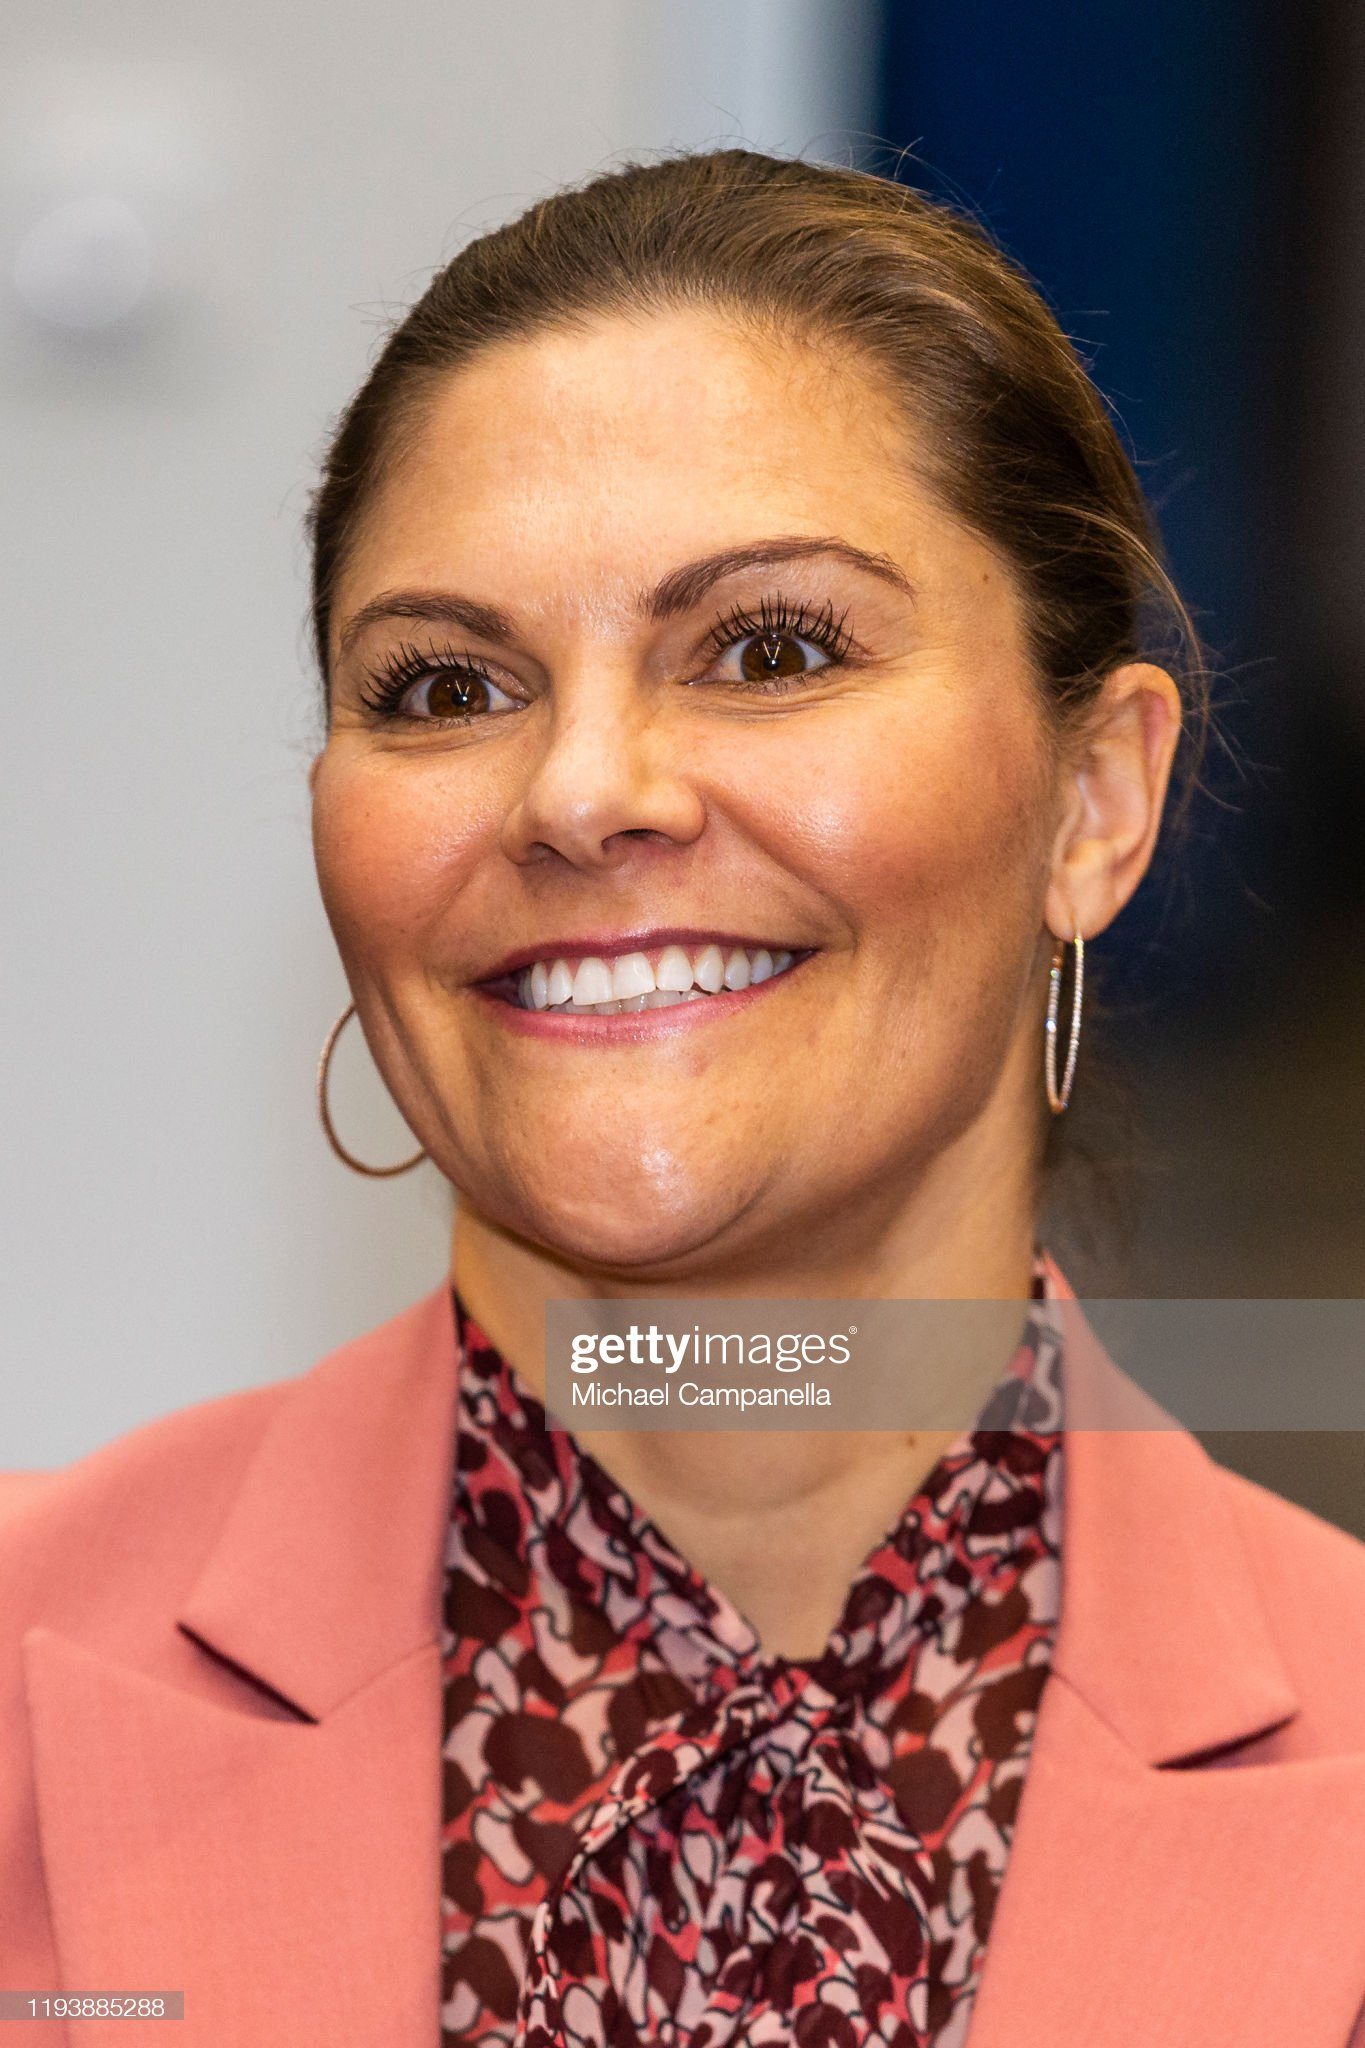 crown-princess-victoria-of-sweden-visits-the-swedish-federation-for-picture-id1193885288